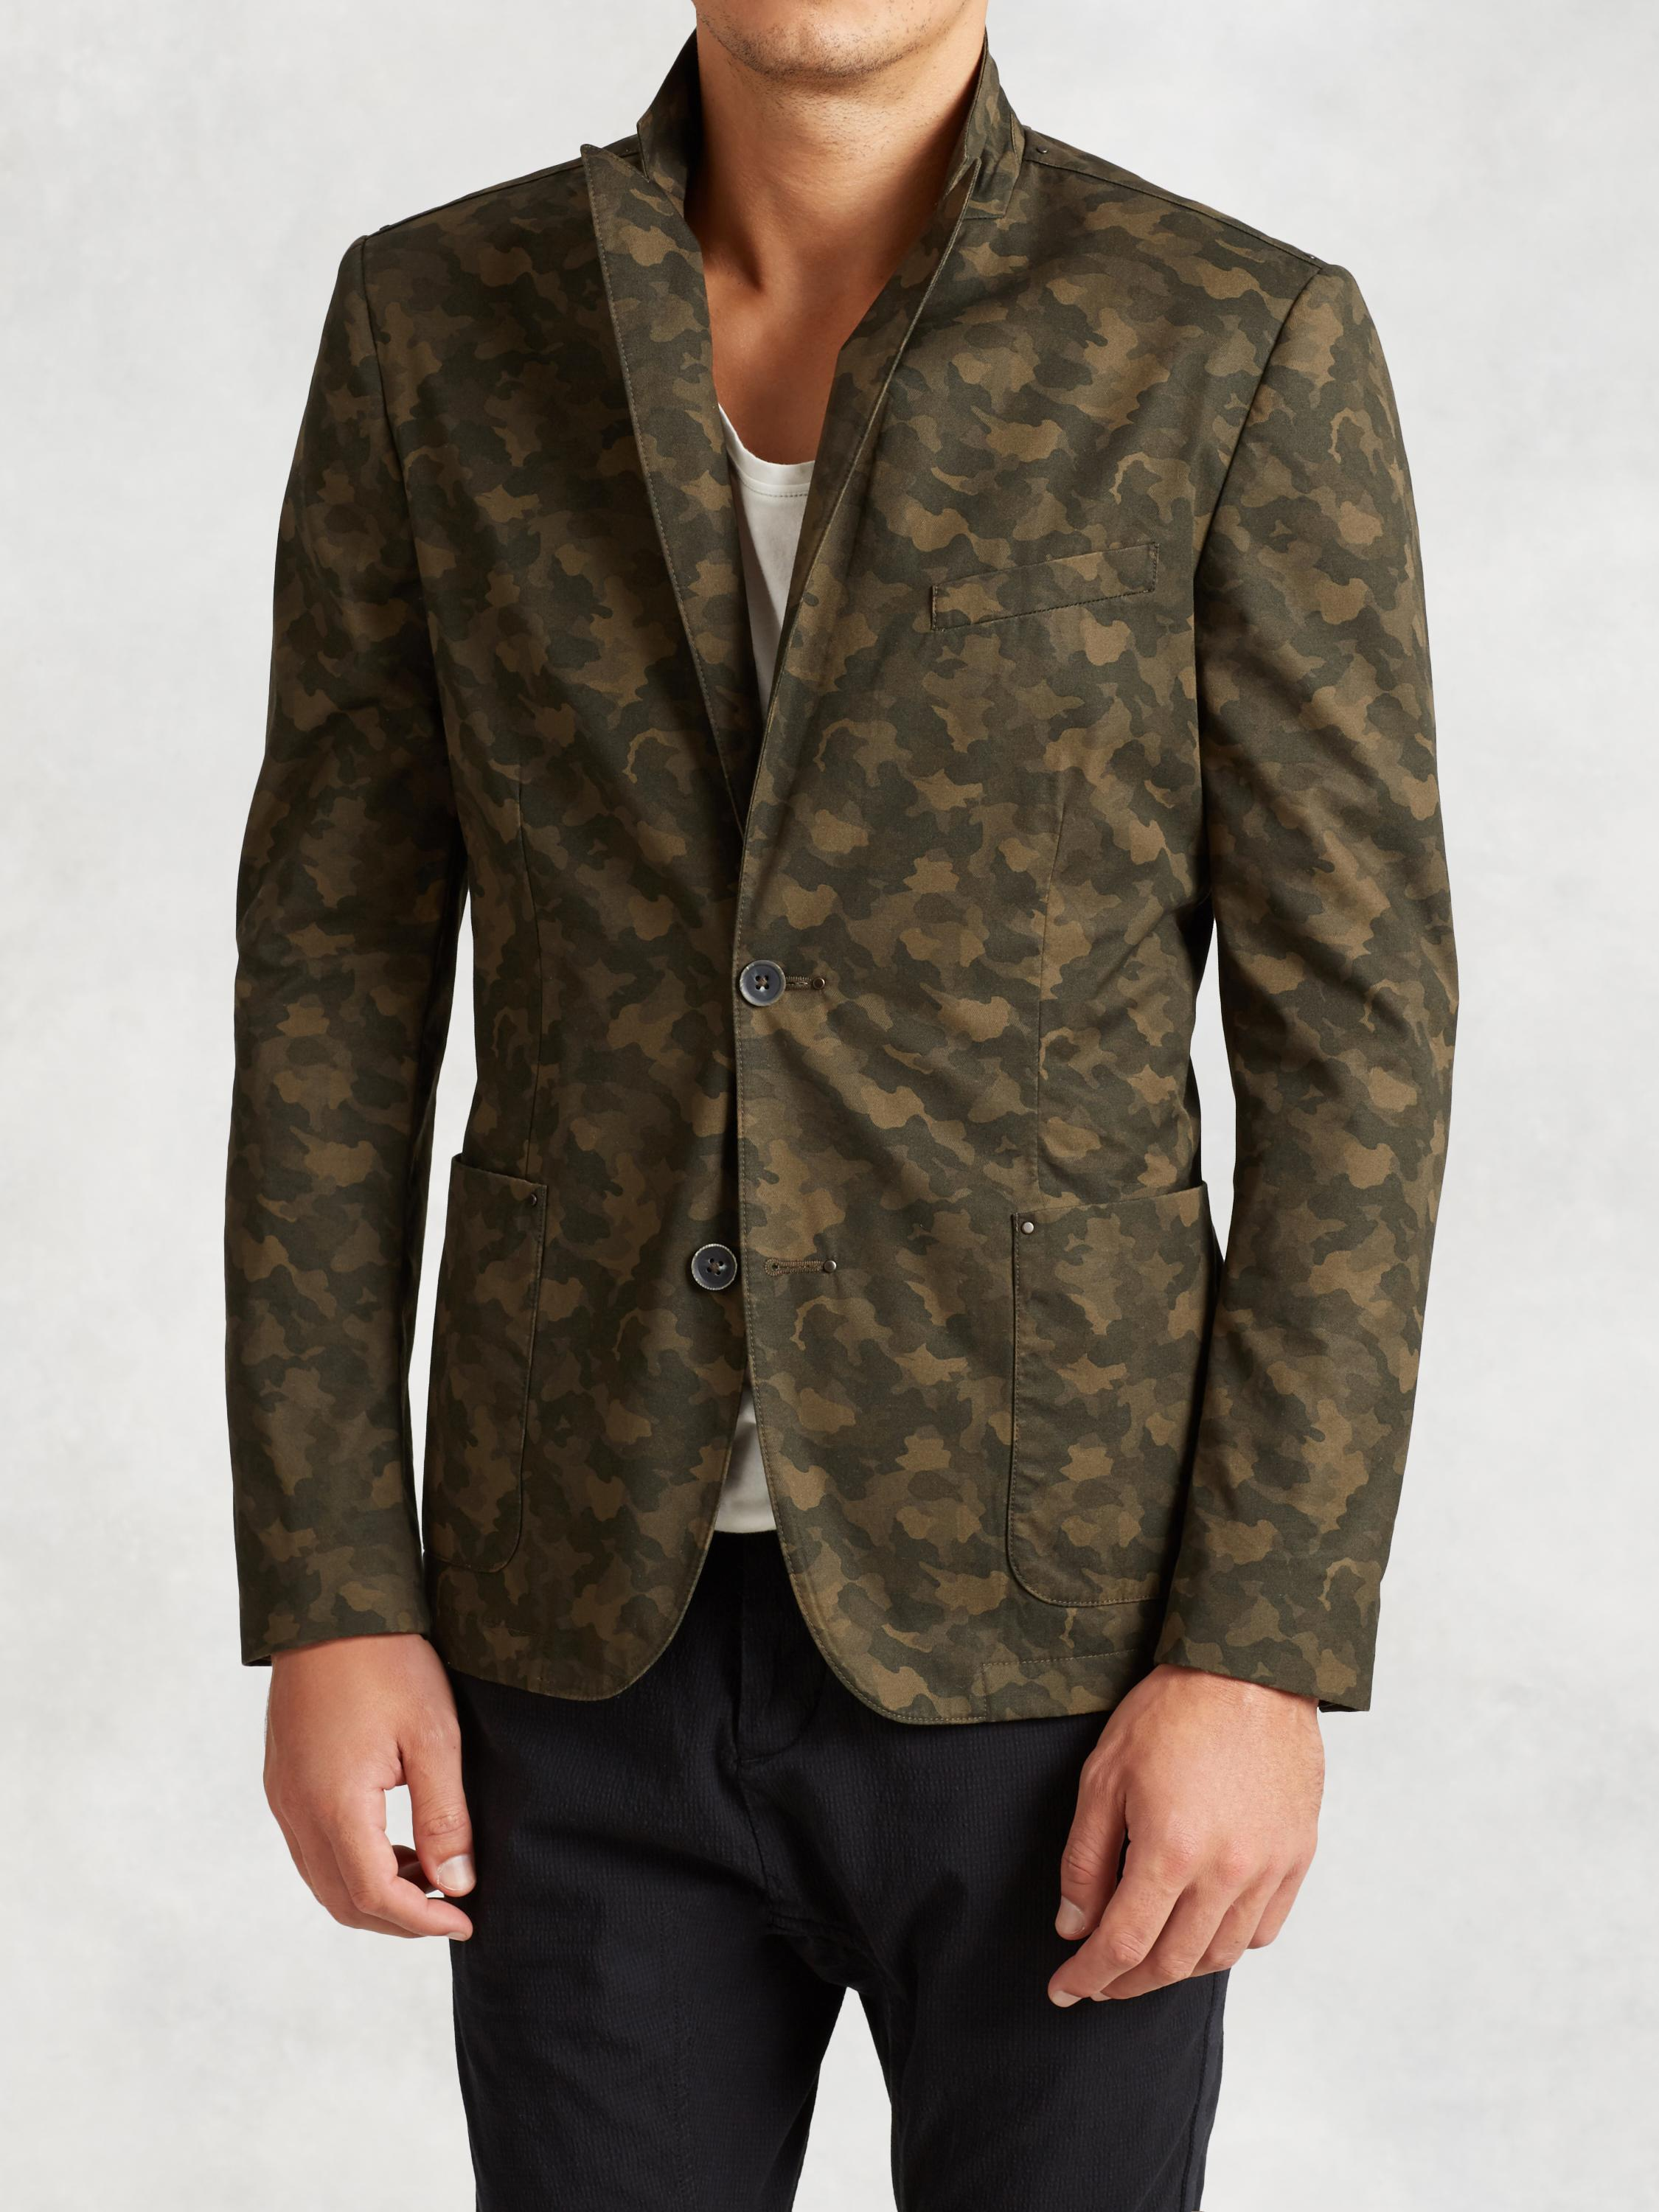 Cotton Camo Jacket